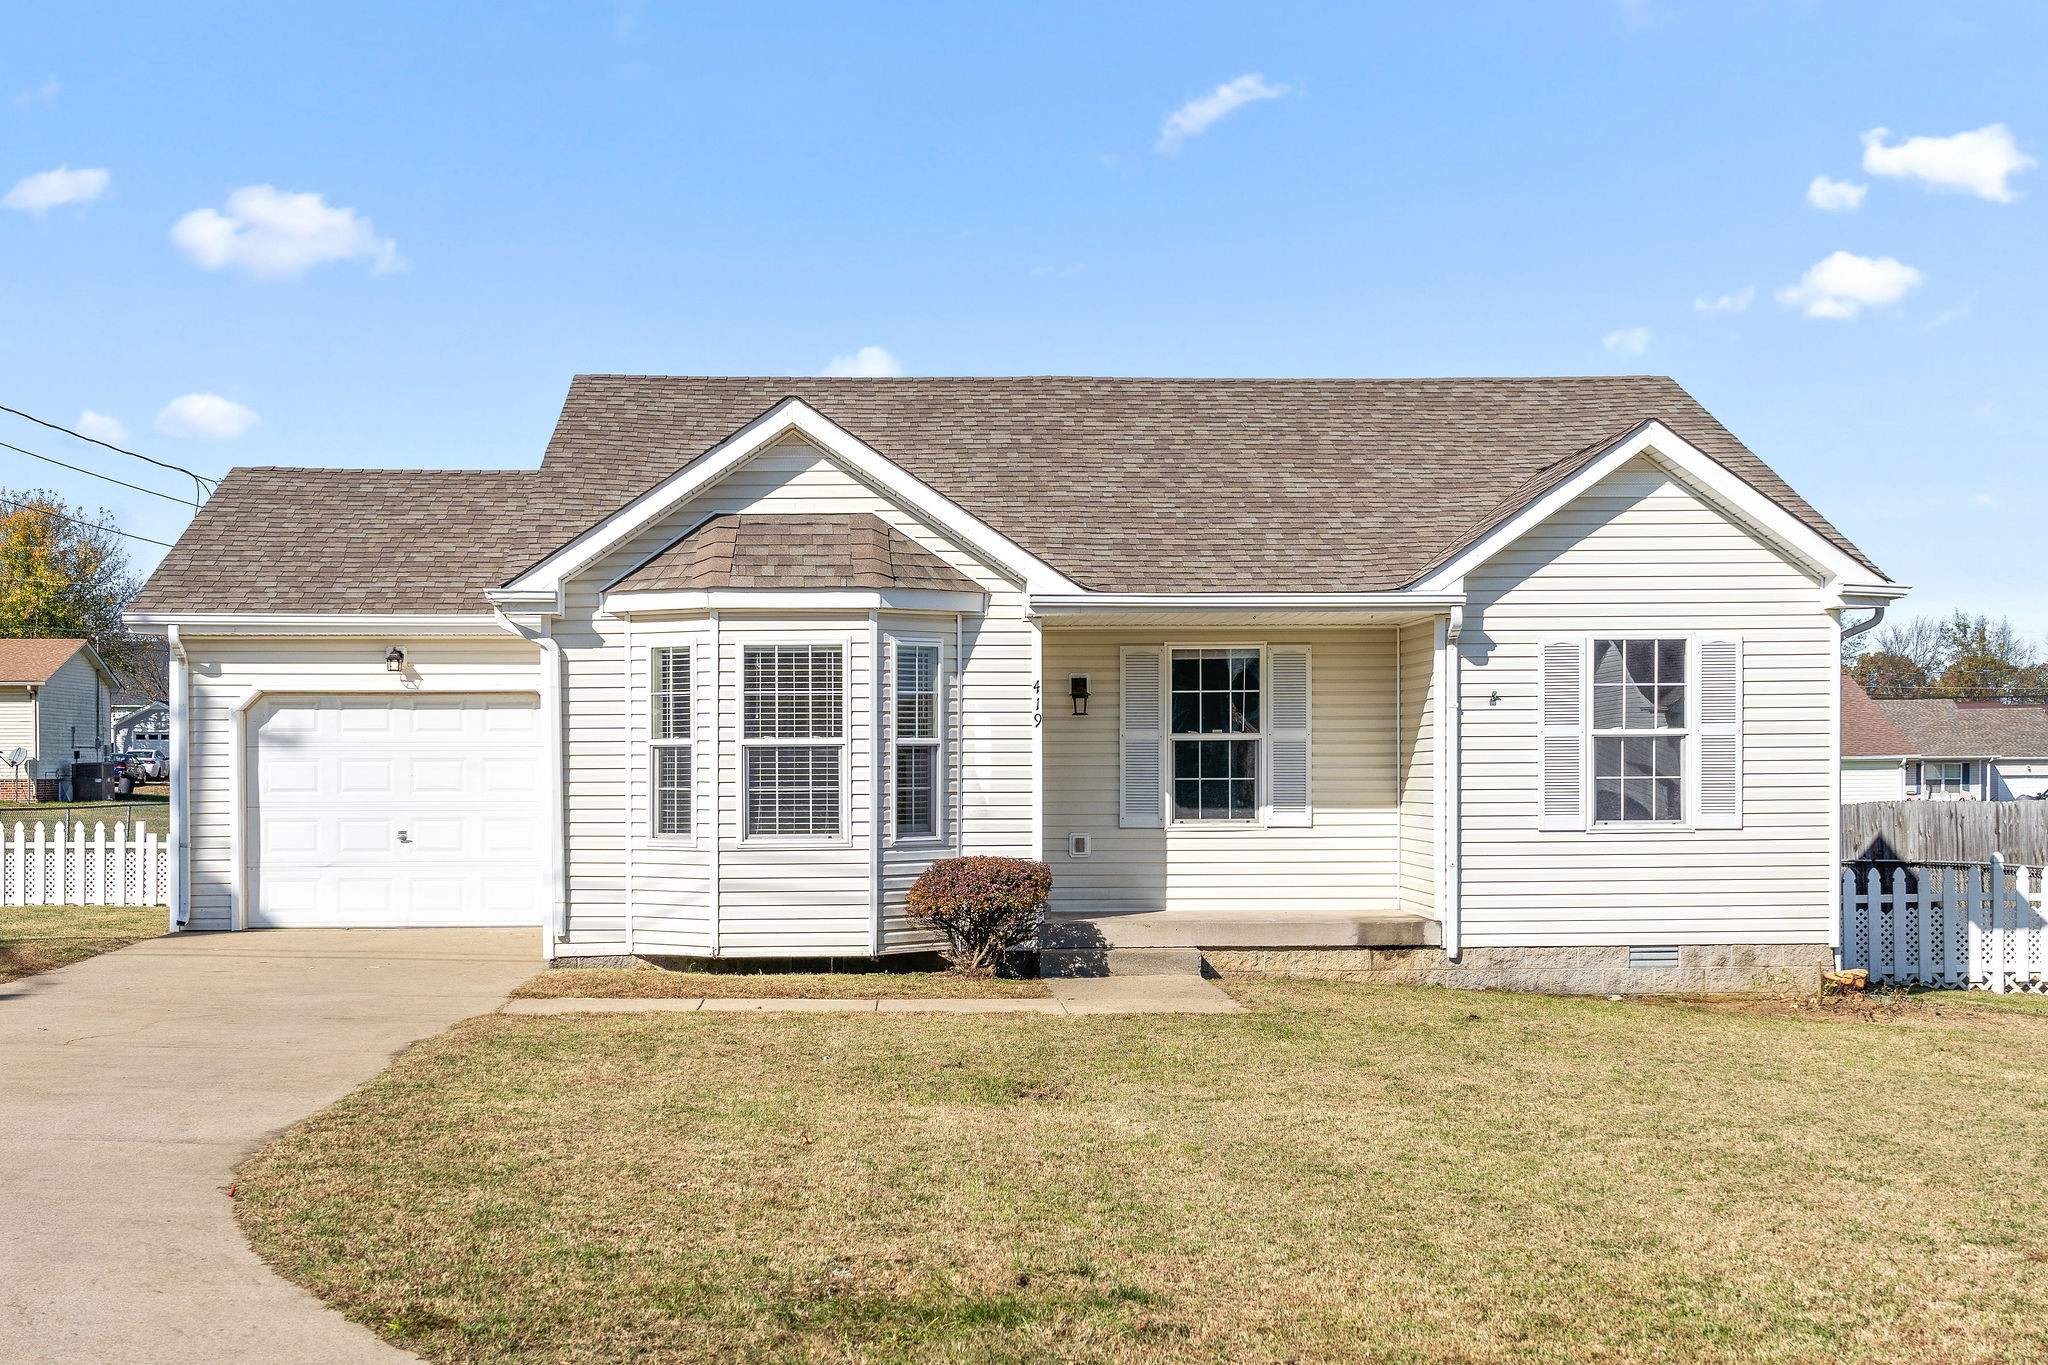 419 Pacific Ave Property Photo - Oak Grove, KY real estate listing